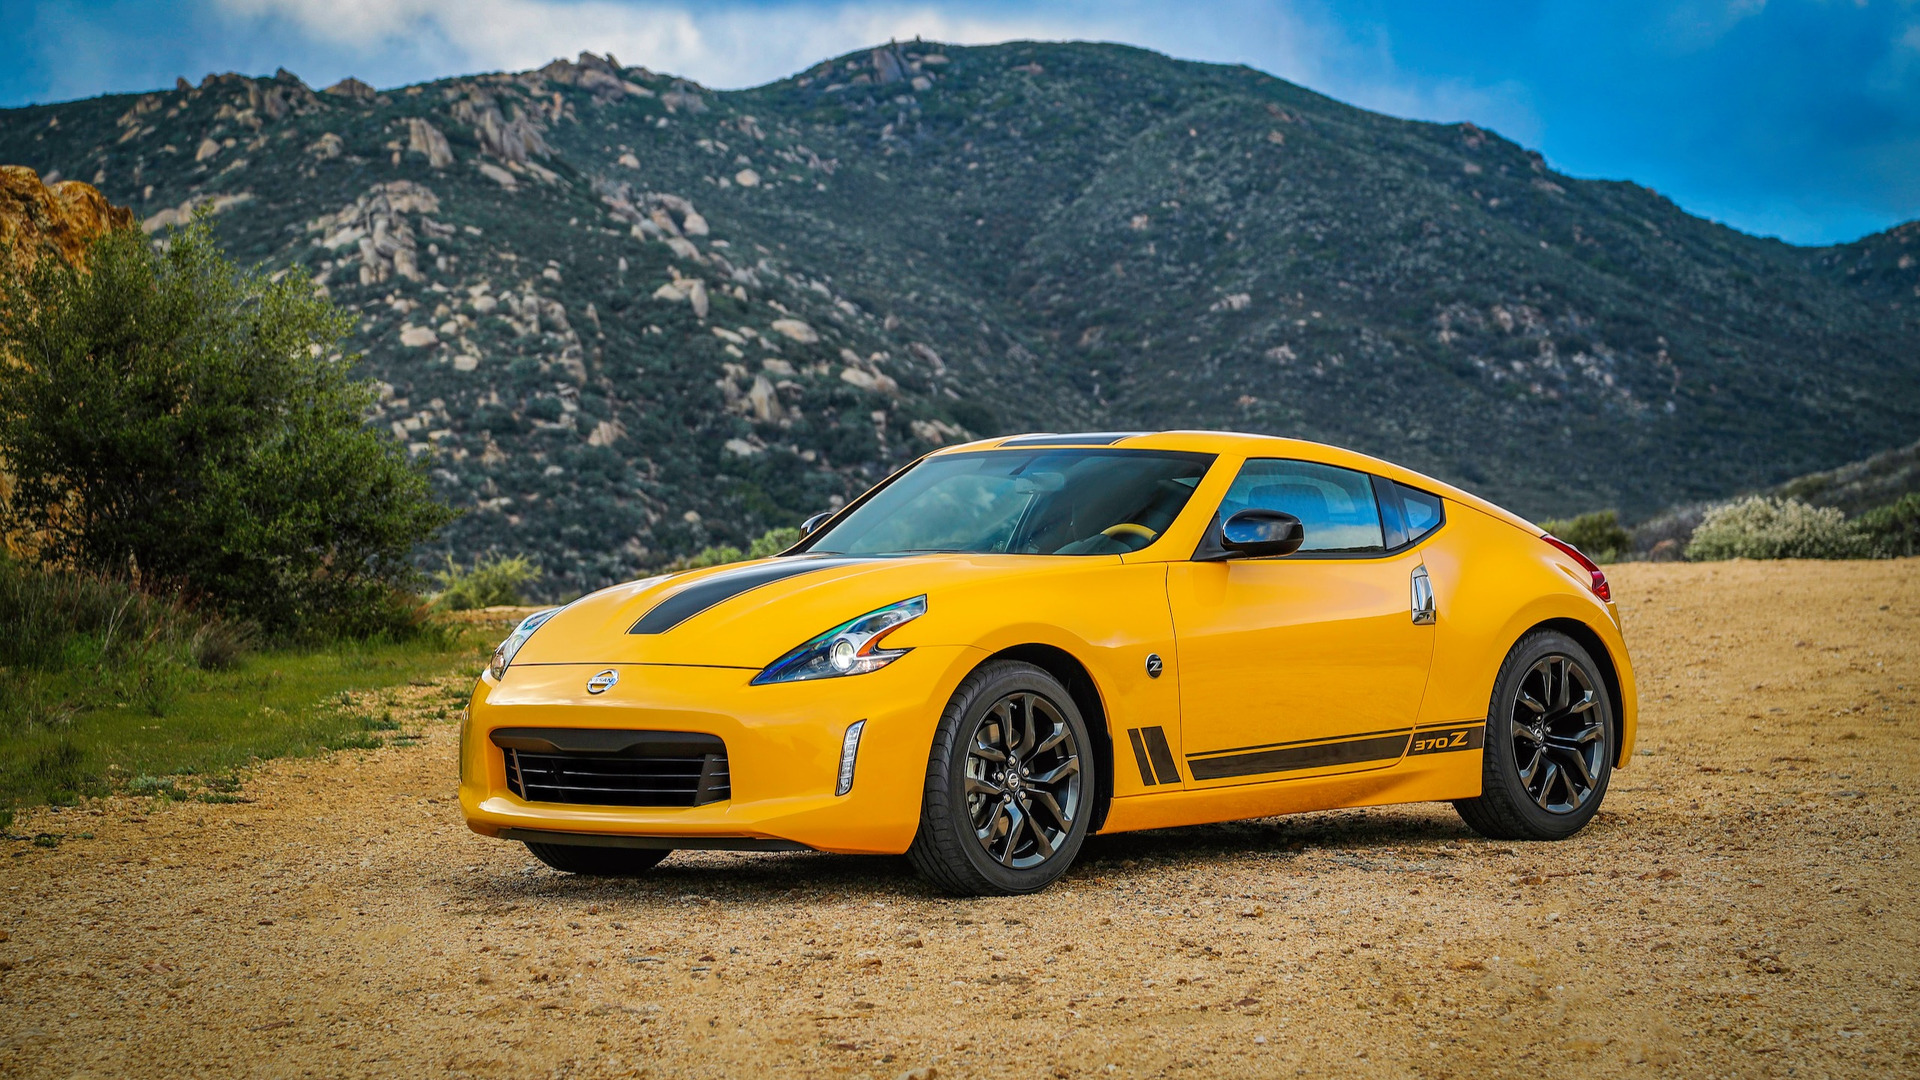 42 The Best 2020 Nissan Z Turbo Nismo Performance